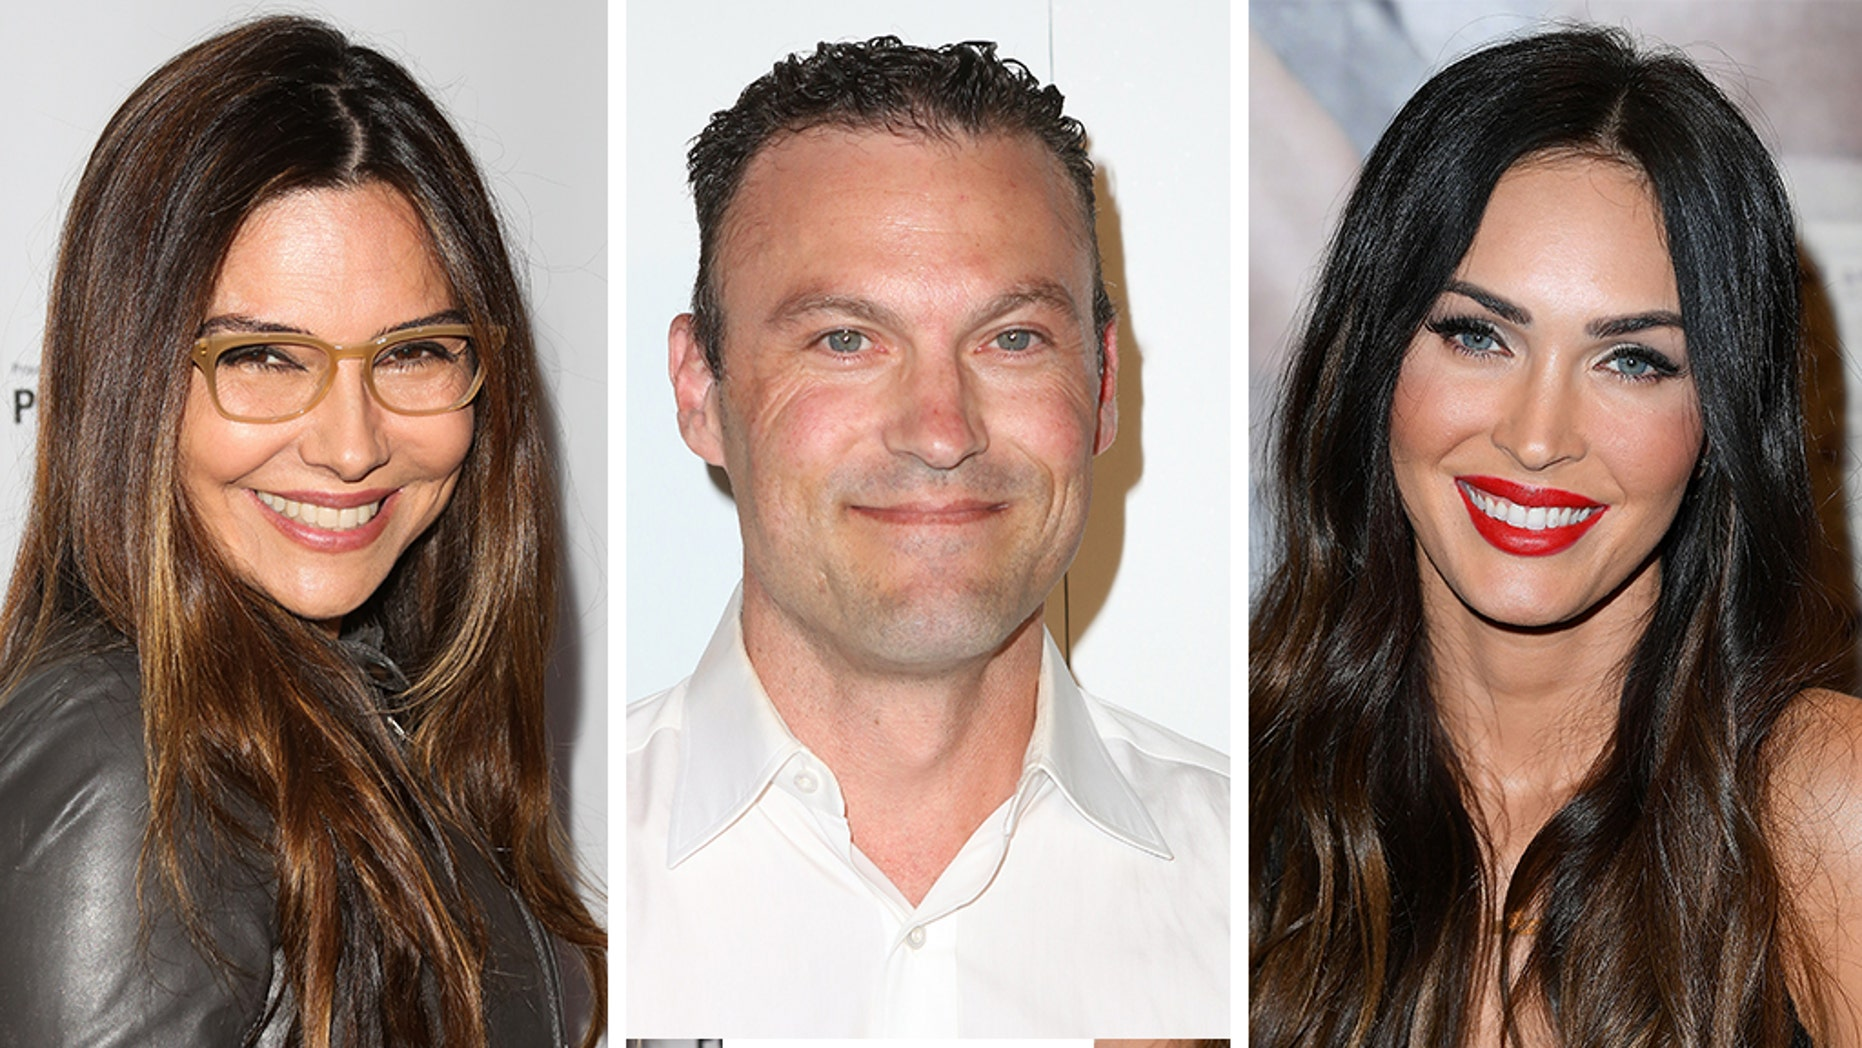 Vanessa Marcil, left, is speaking out about her custody battle with ex Brian Austin Green and his wife, Megan Fox, right.